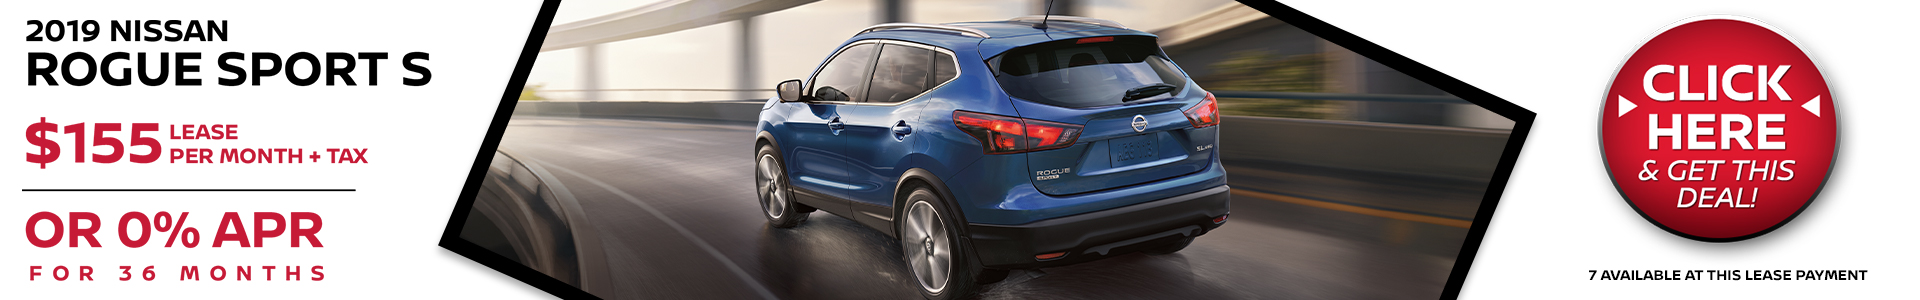 Mossy Nissan - Nissan Rogue Sport $155 Lease